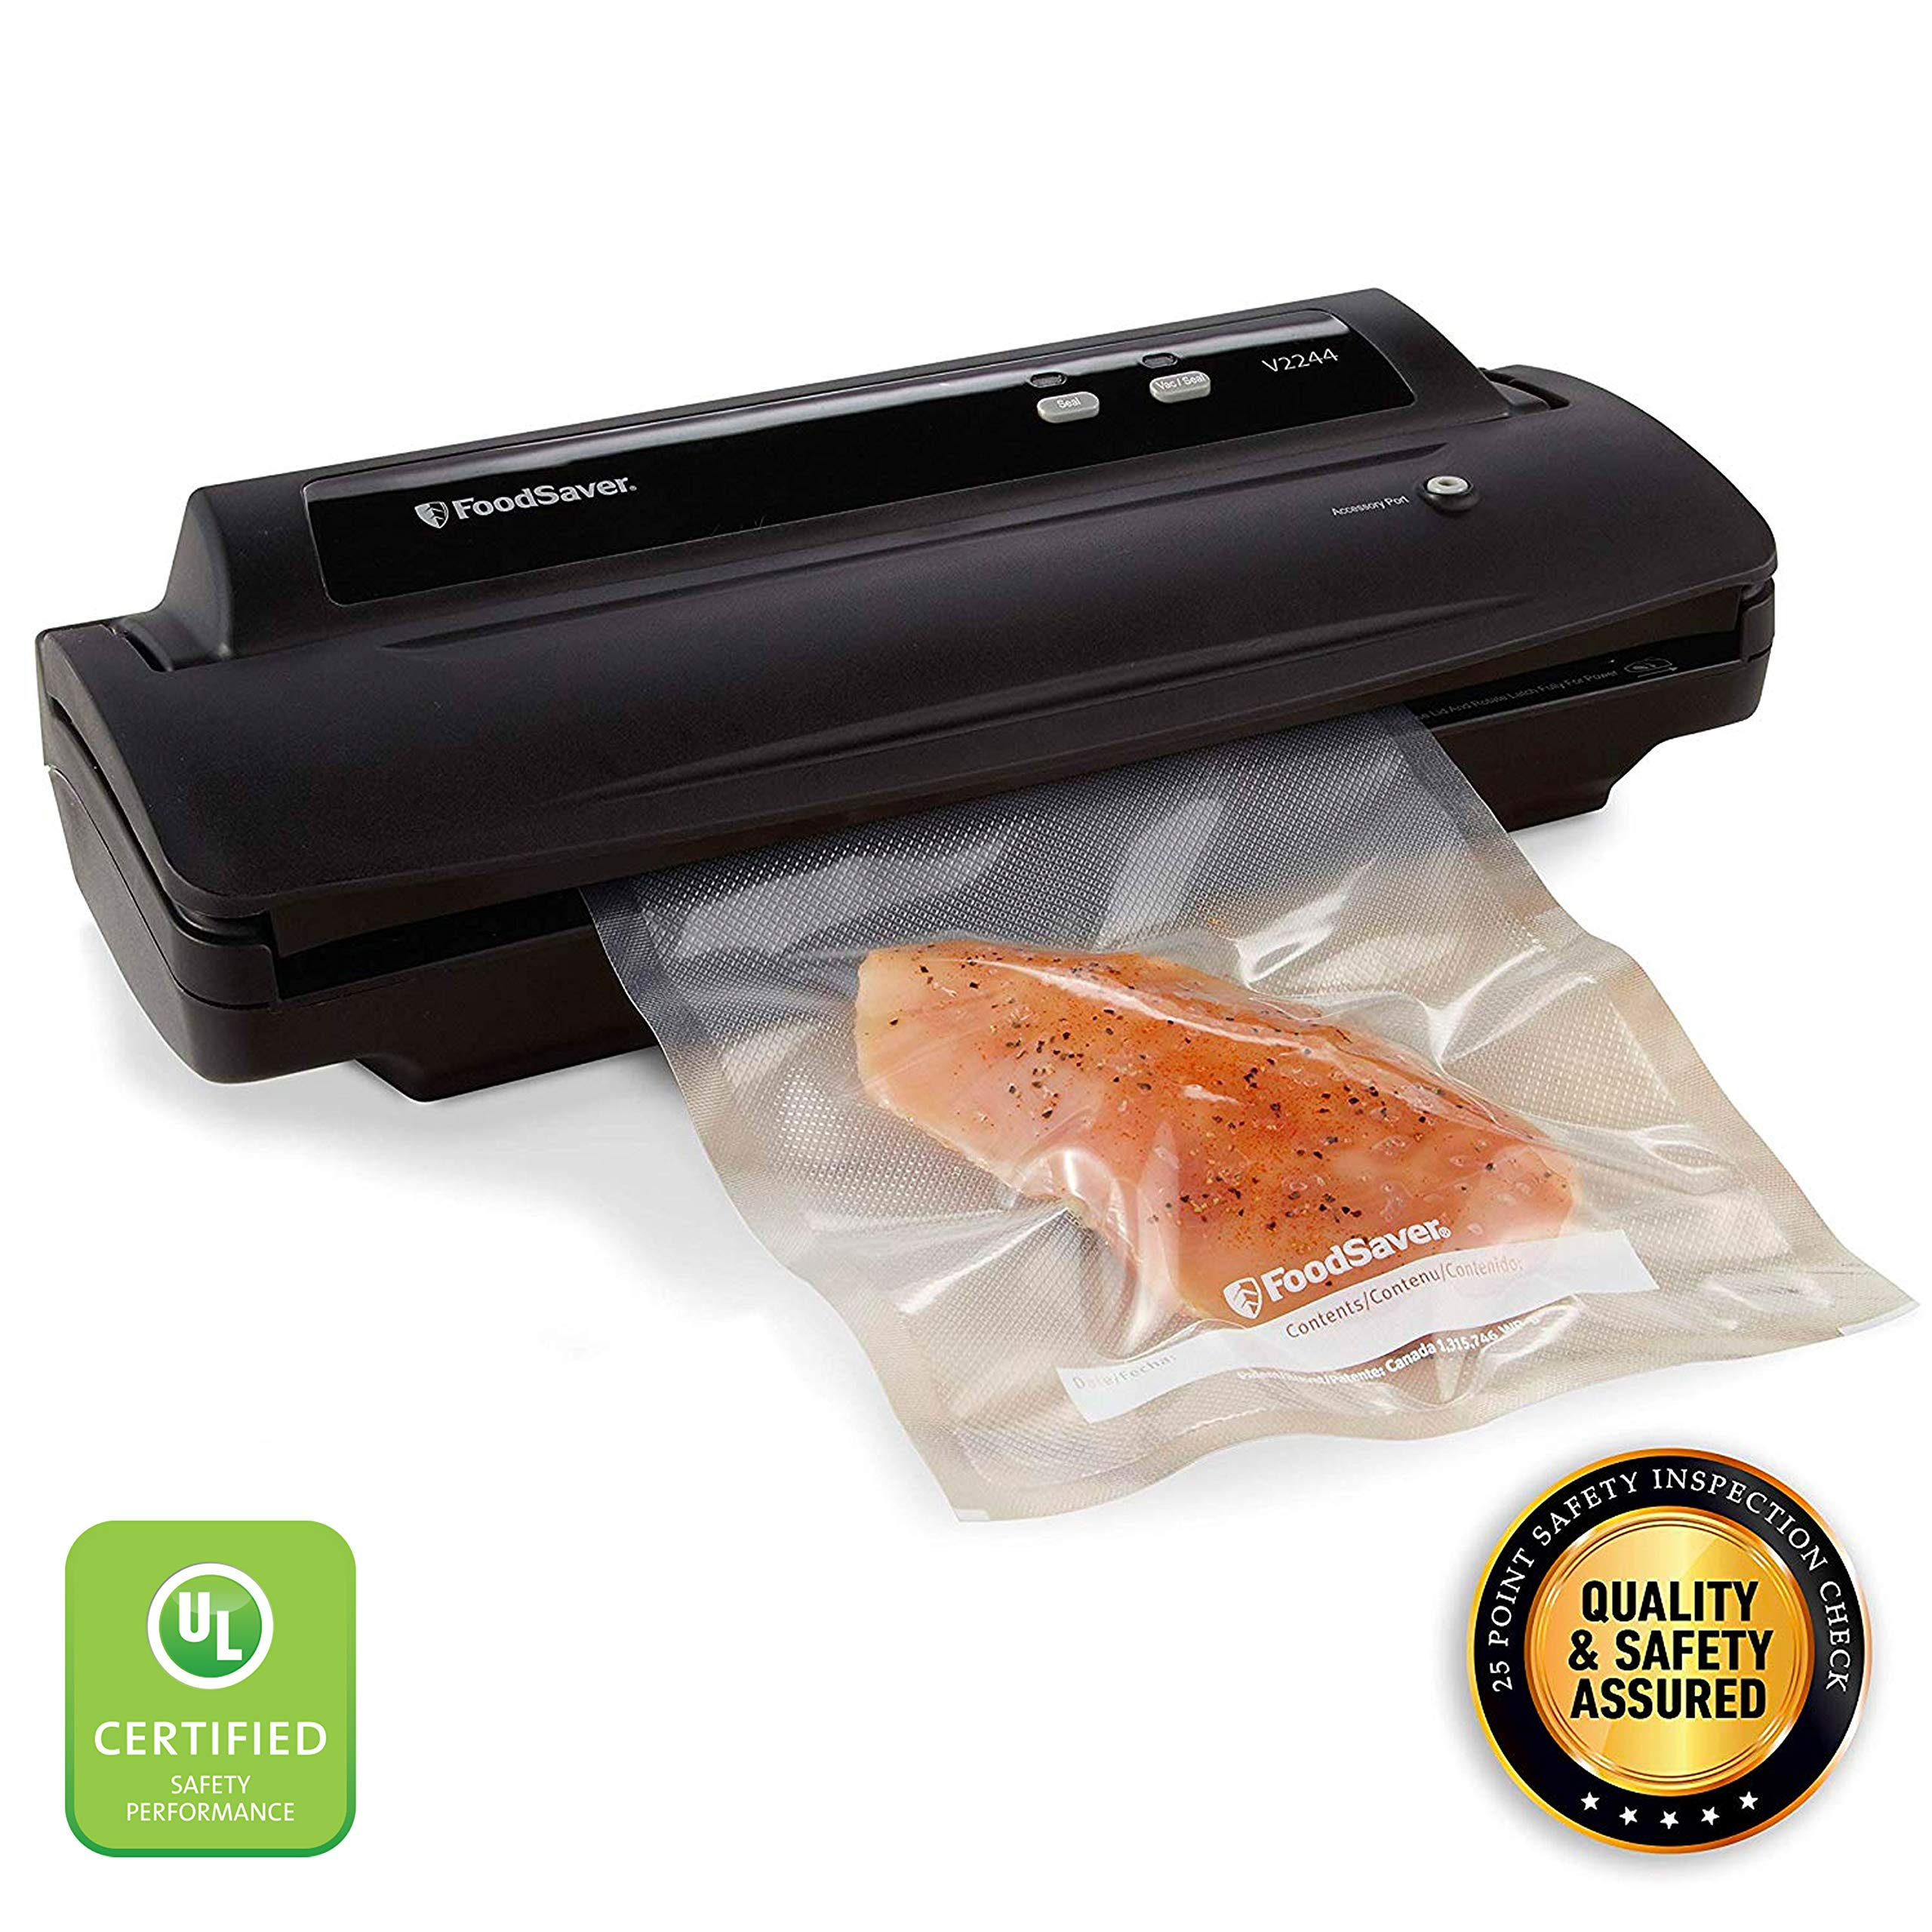 FoodSaver V2244 Vacuum Sealer Machine for Food Preservation with Bags and Rolls Starter Kit | #1 Vacuum Sealer System | Compact & Easy Clean | UL Safety Certified | Black by FoodSaver